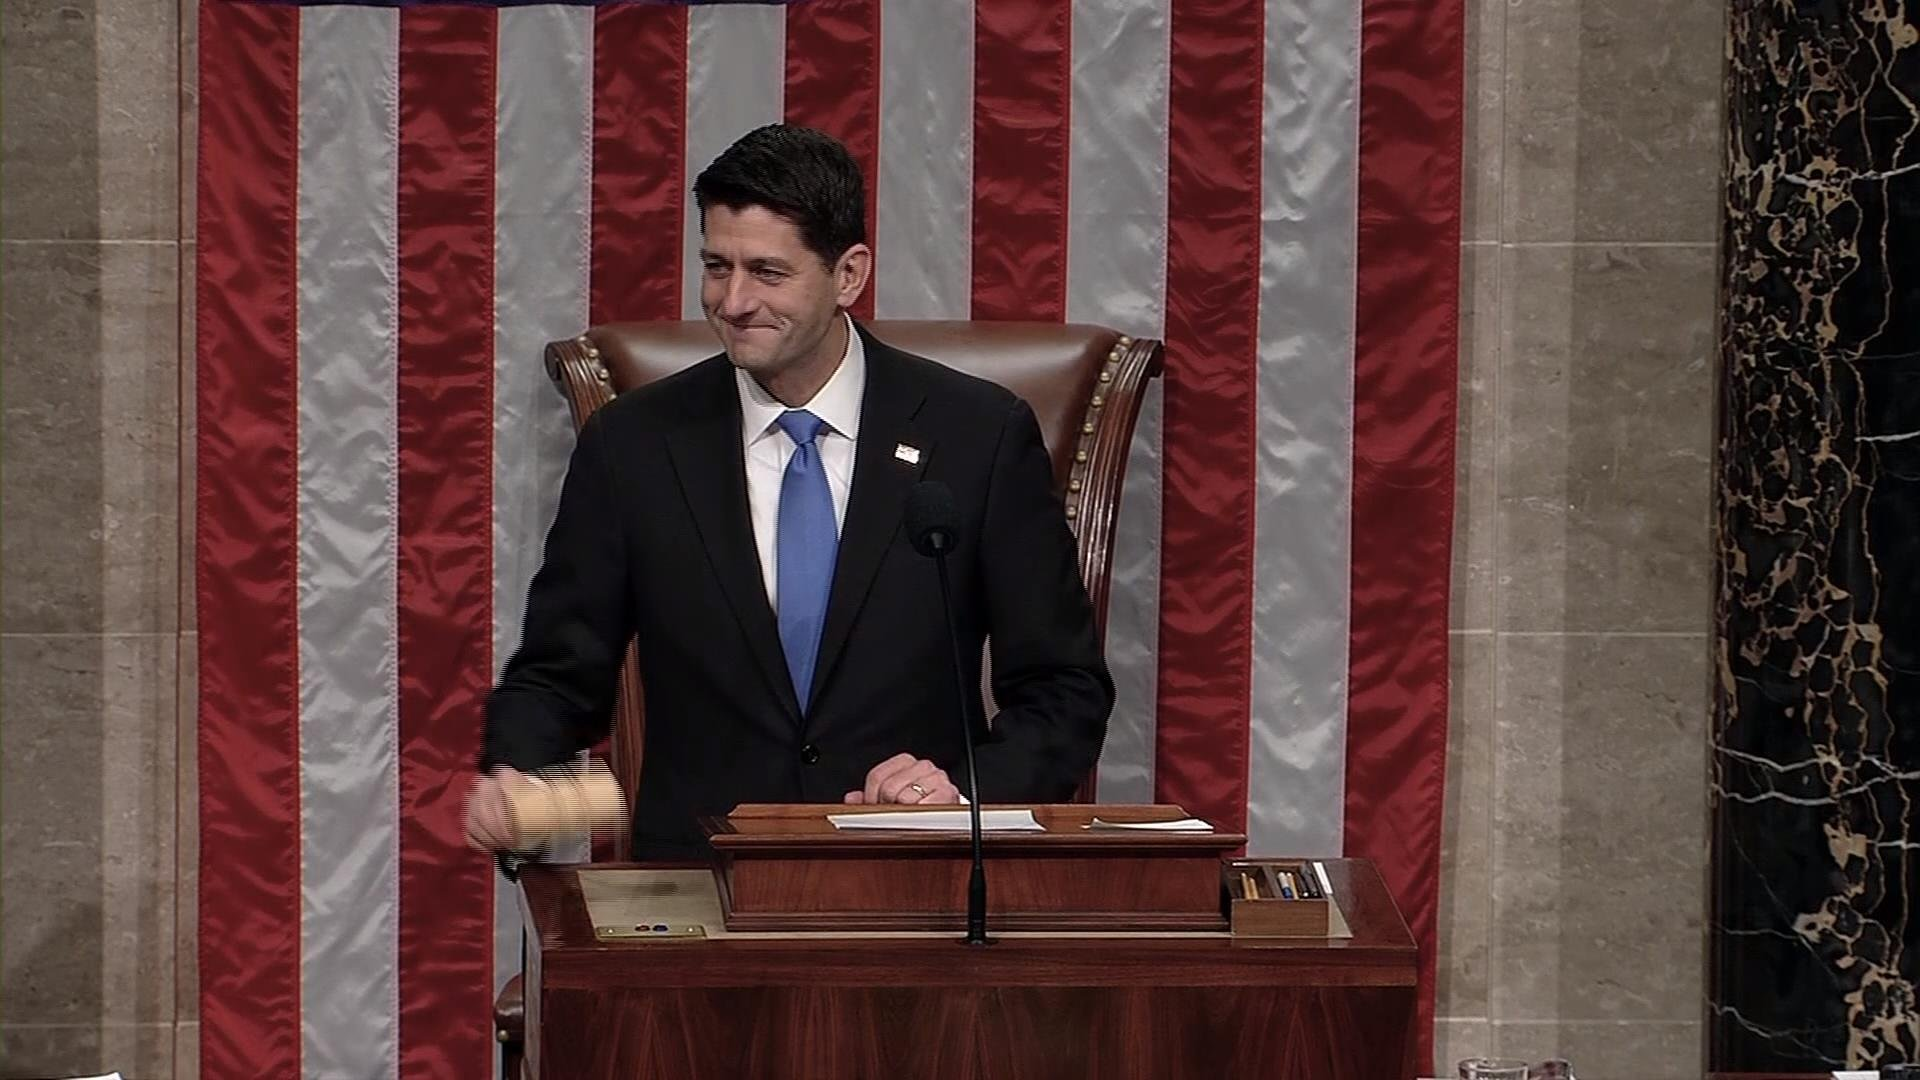 House Speaker Paul Ryan addressing representatives.